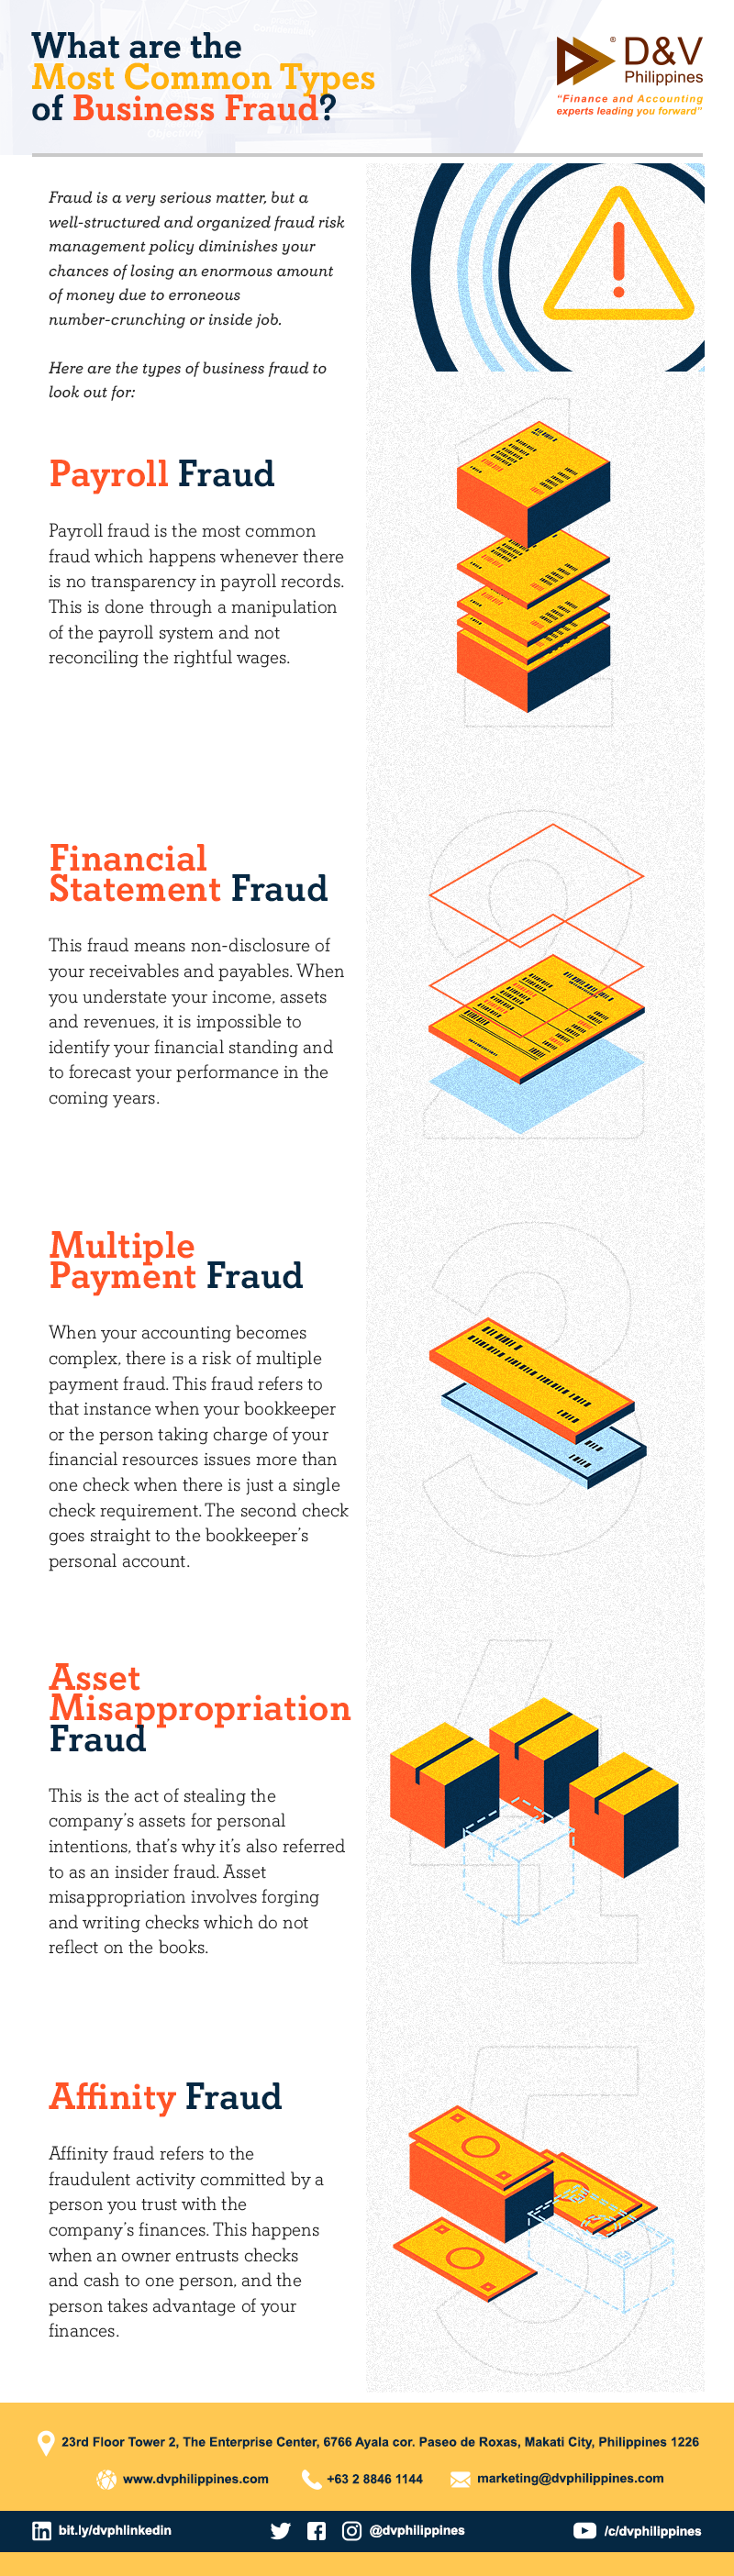 2020_Most Common Type of Business Fraud_Infog